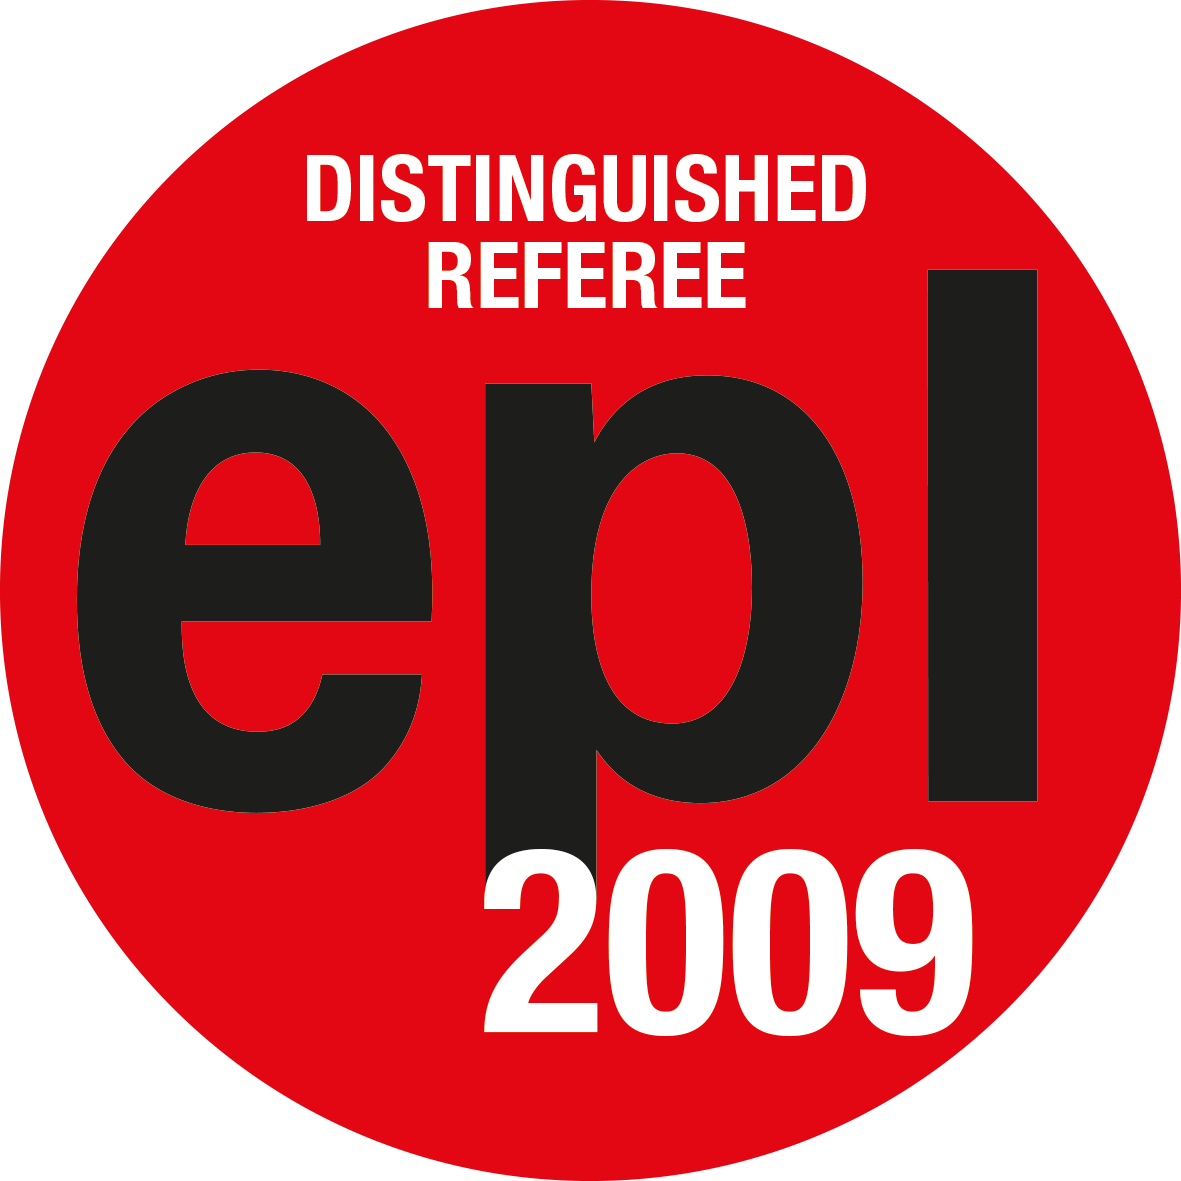 EPL Distinguished Referees 2009